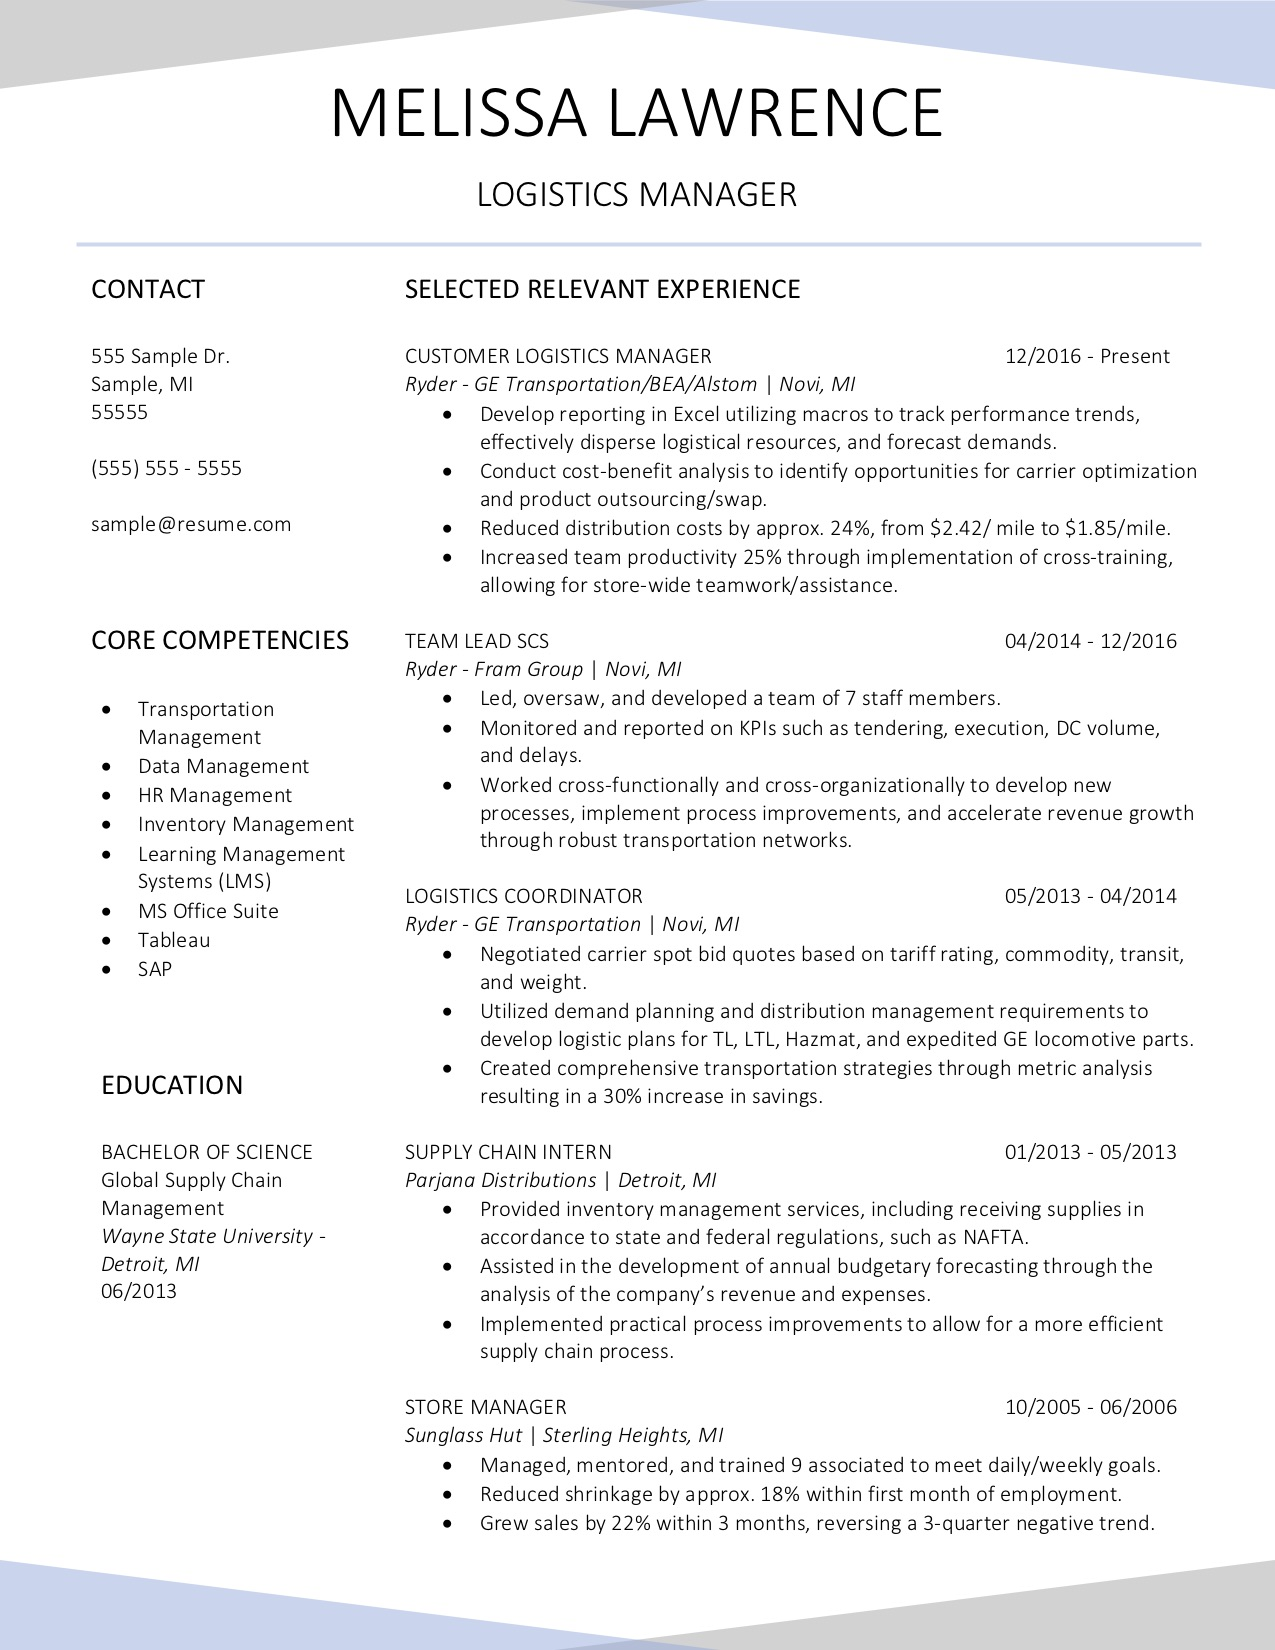 Client Resume #37. Click to Enlarge.